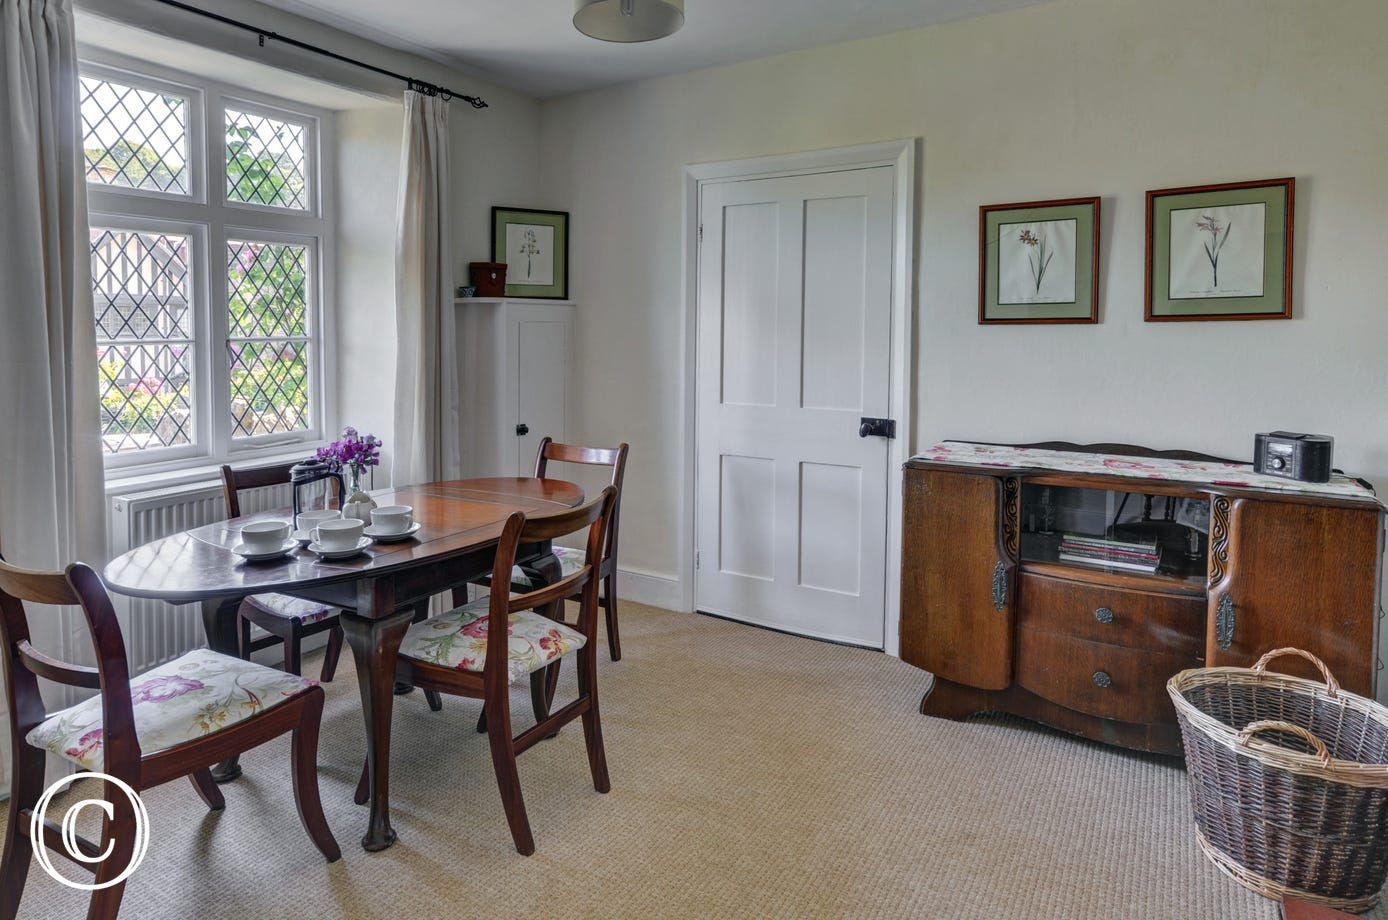 A separate dining room provides lovely views over the village and surrounding hillsides